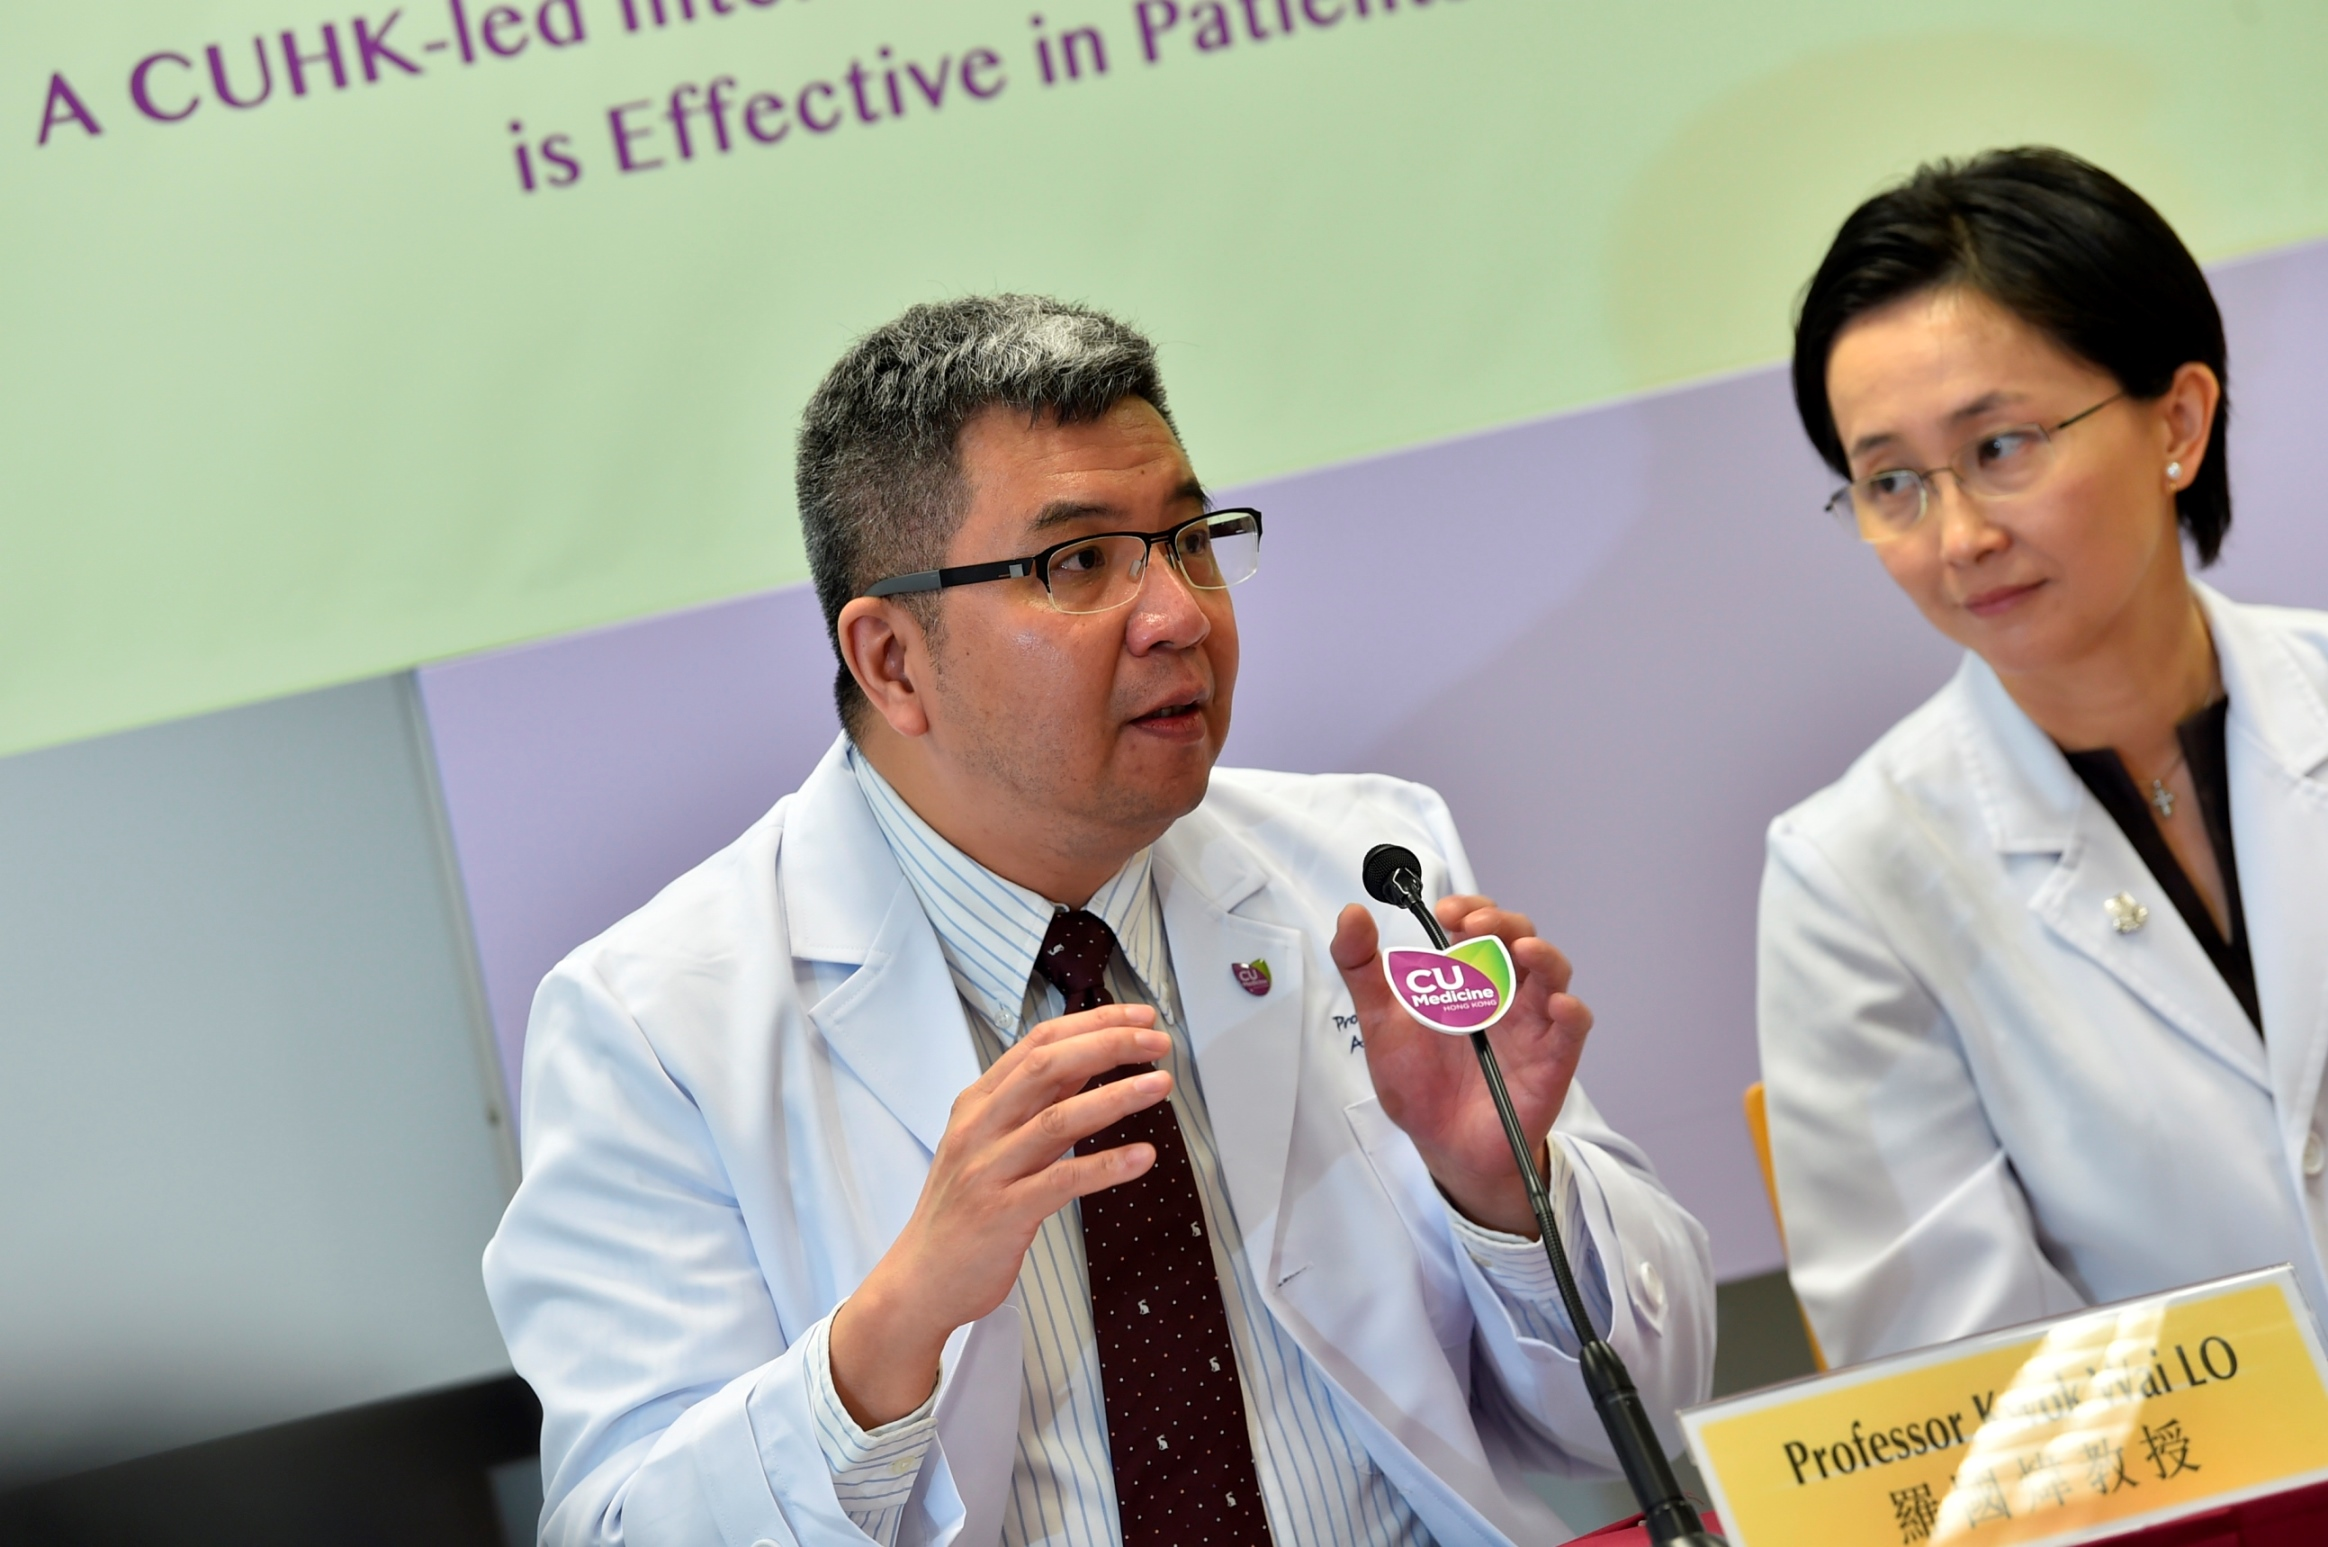 Professor Kwok Wai LO (left) hopes that by identifying the biomarkers in NPC patients, the prognosis assessment as well as the development of precision medicine could be facilitated, hence enhancing the treatment outcomes for advanced NPC patients.